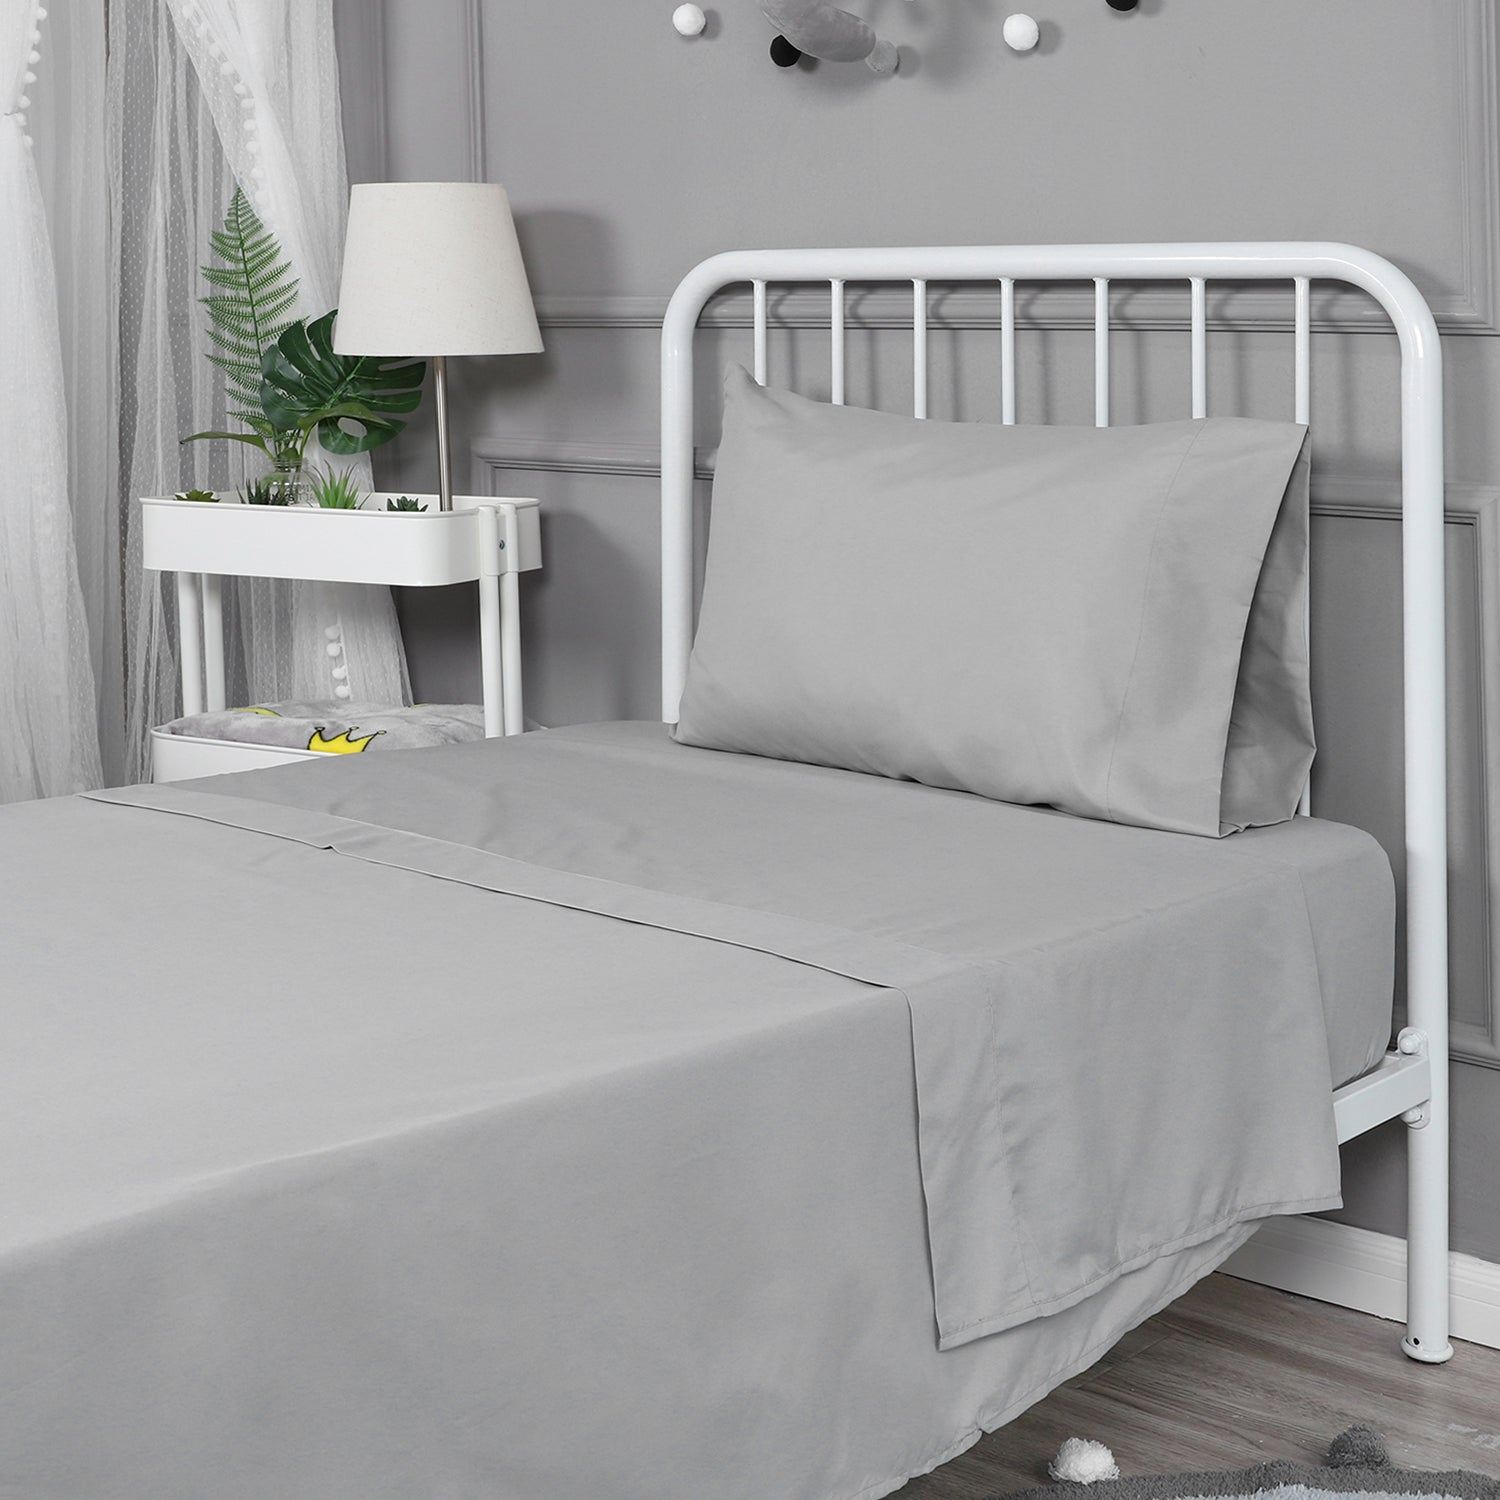 Soft Microfiber Twin Bed Sheets 3-Piece Set - Grey